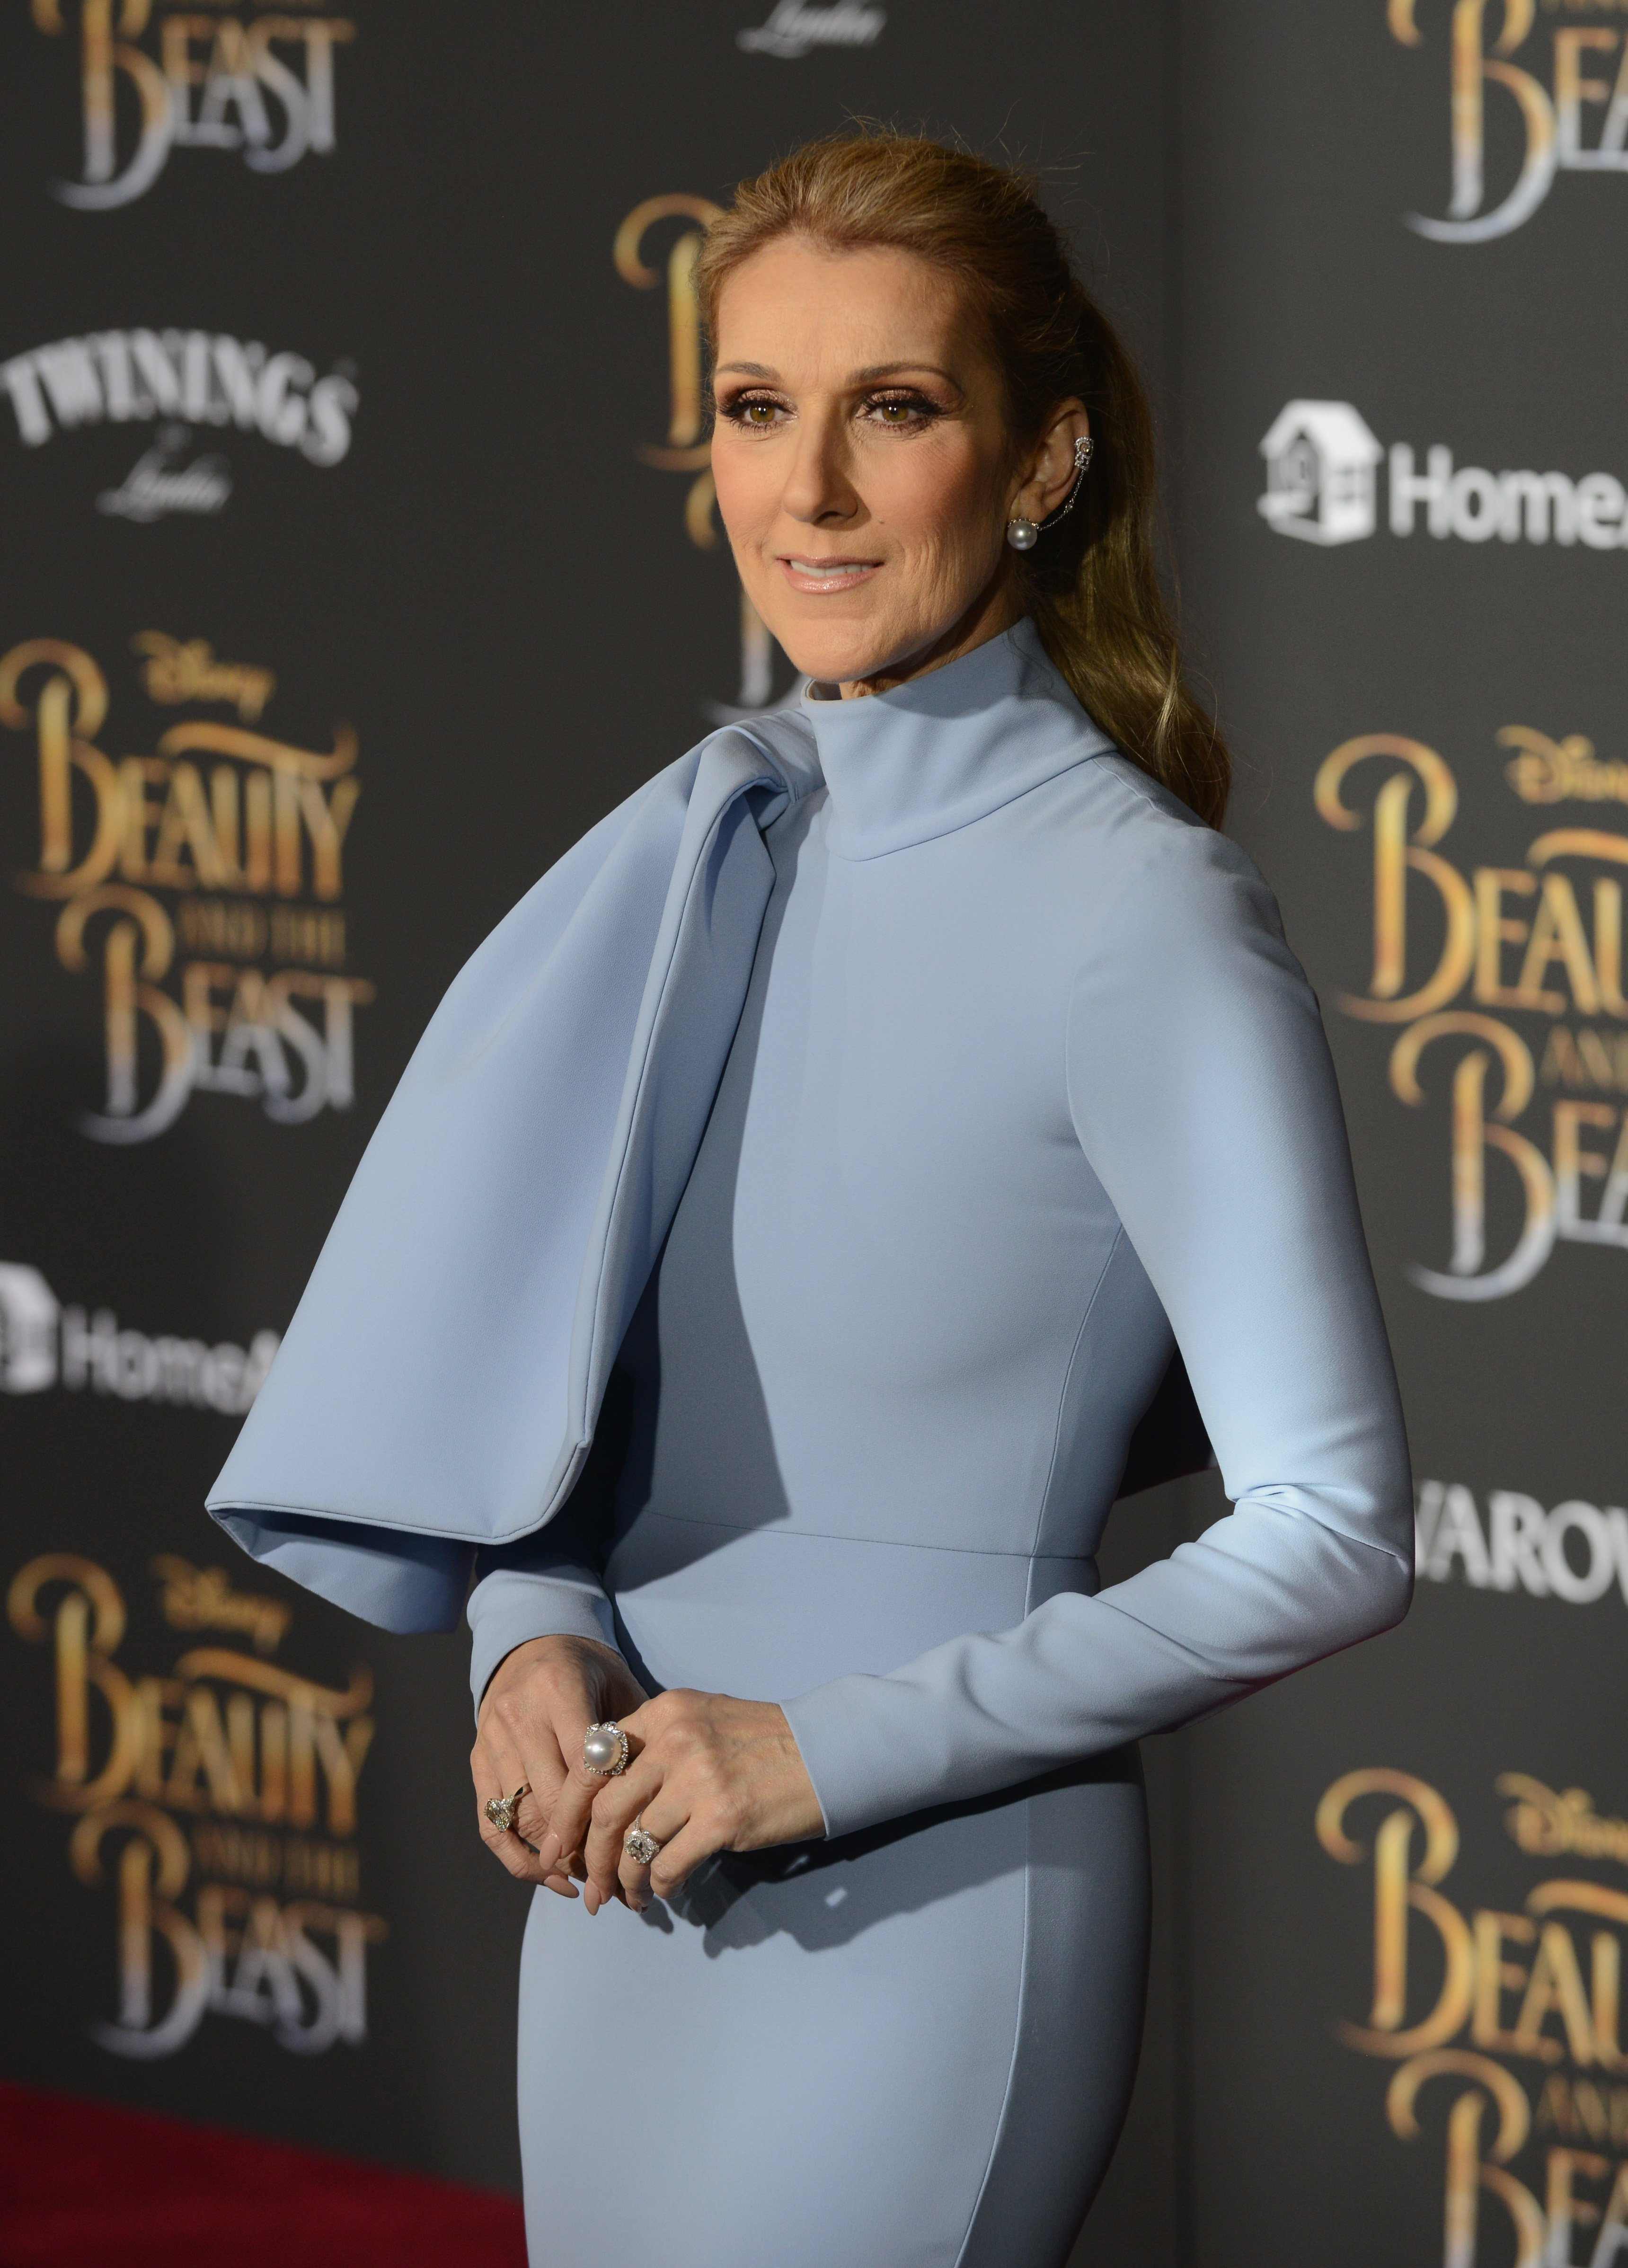 Celine Dion attends the premiere of Beauty and the Beast in 2017 | Photo: Getty Images